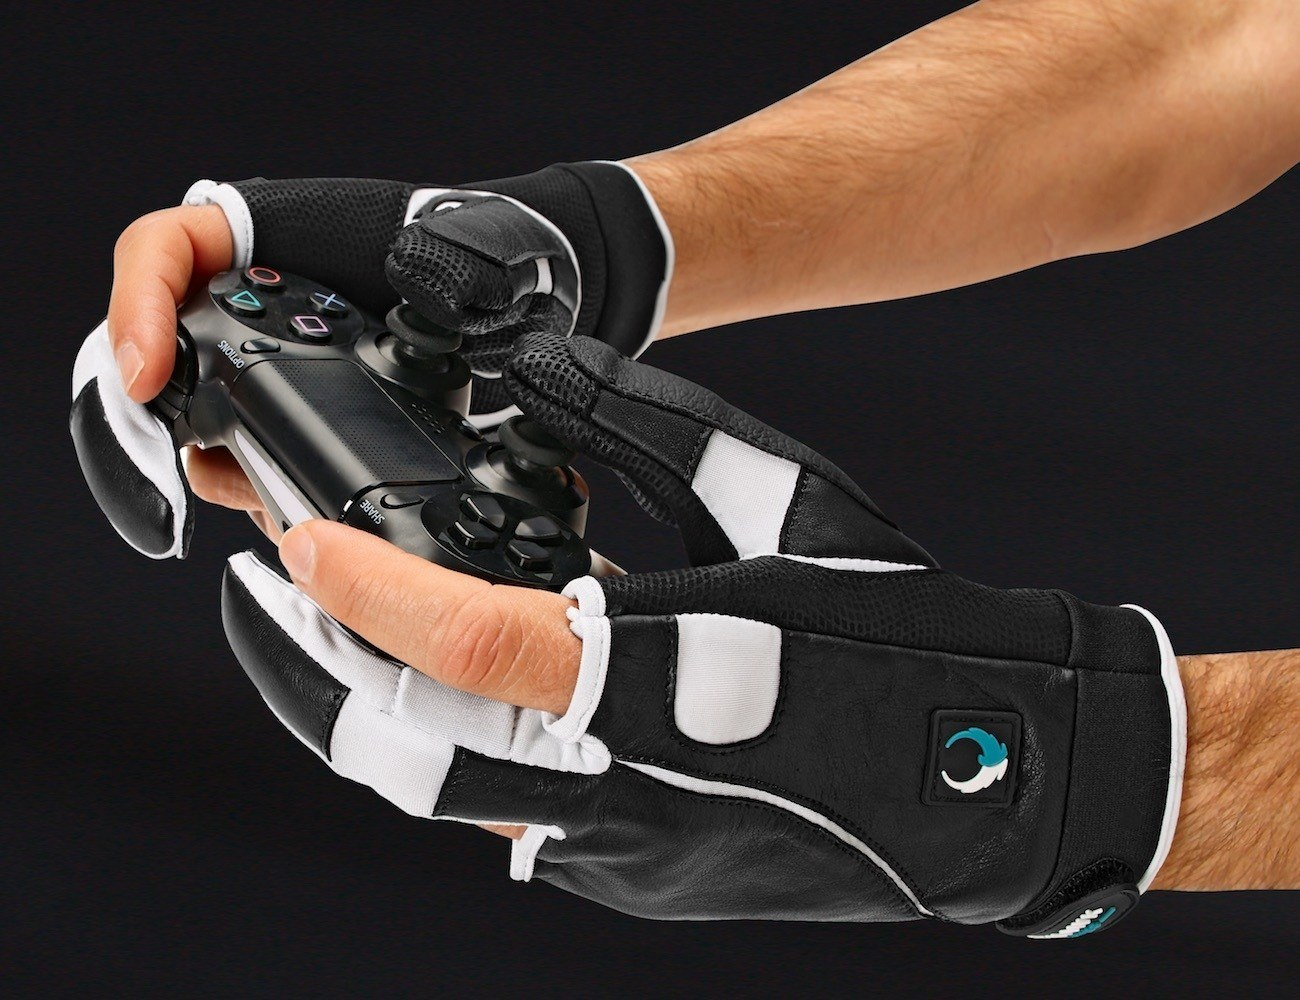 These Innovative Gaming Gloves Give You the Edge